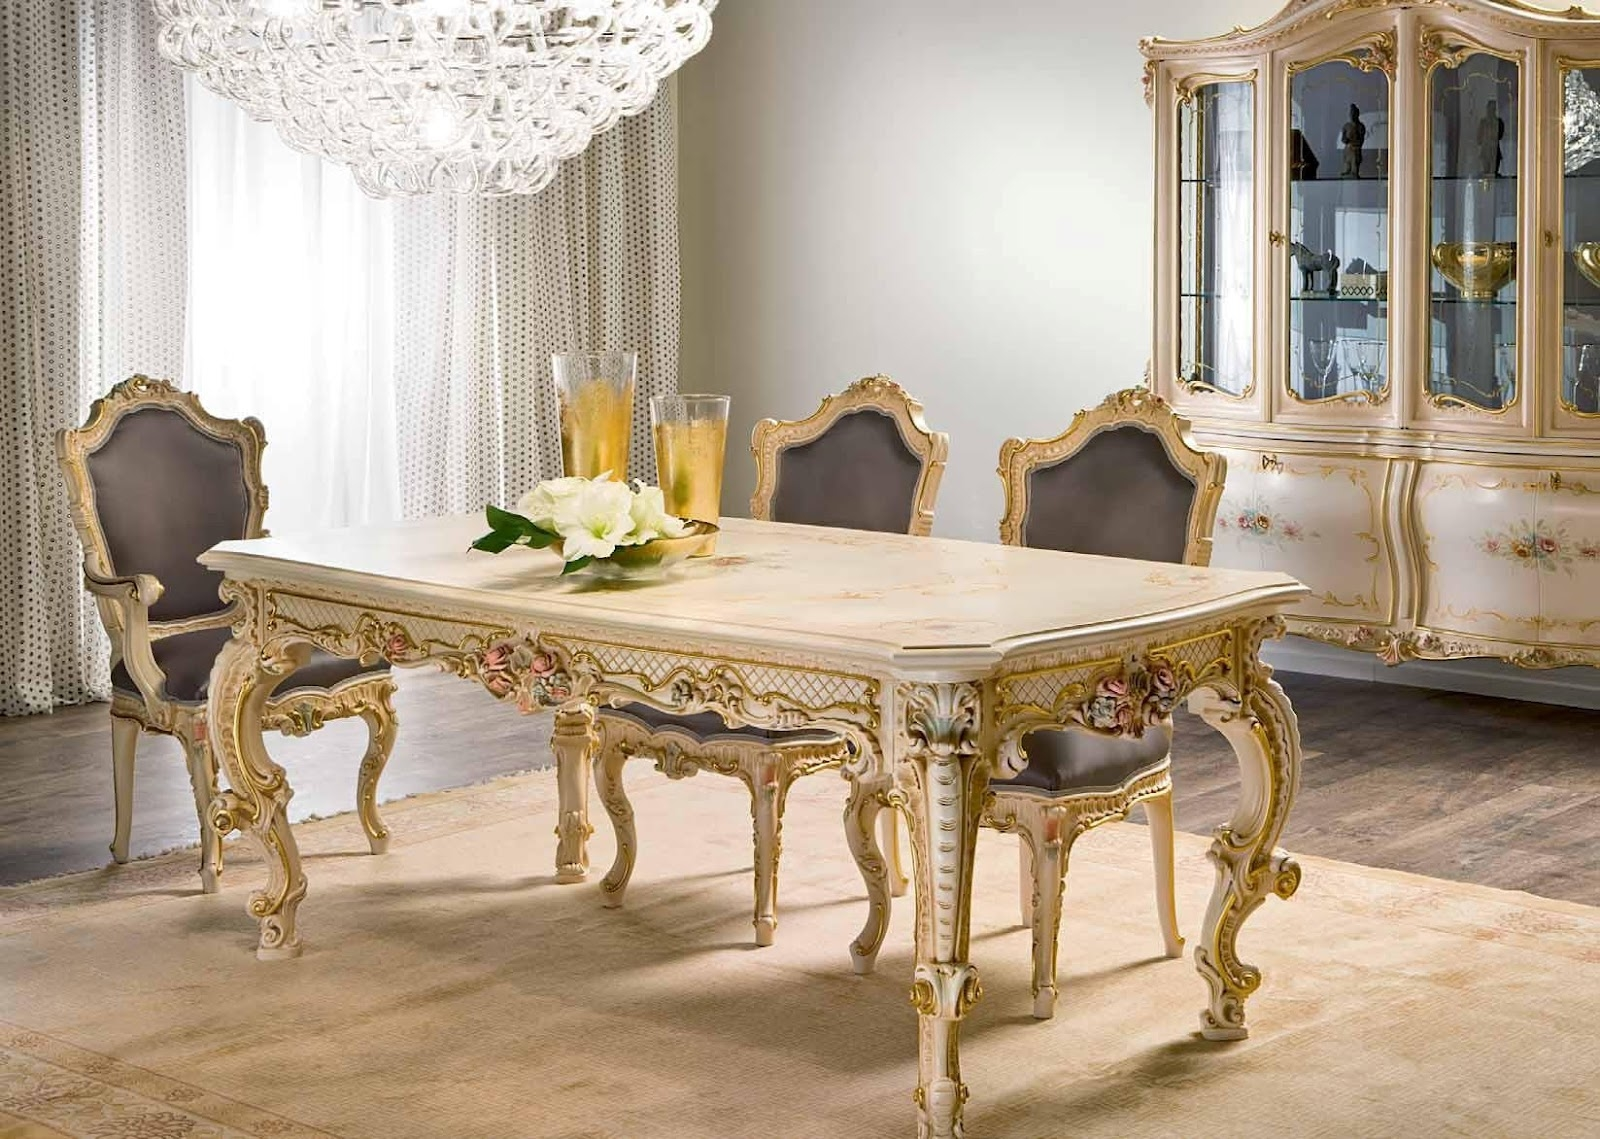 French style furniture french furniture furnitureslideshow7 treatment furnitures lovely french style